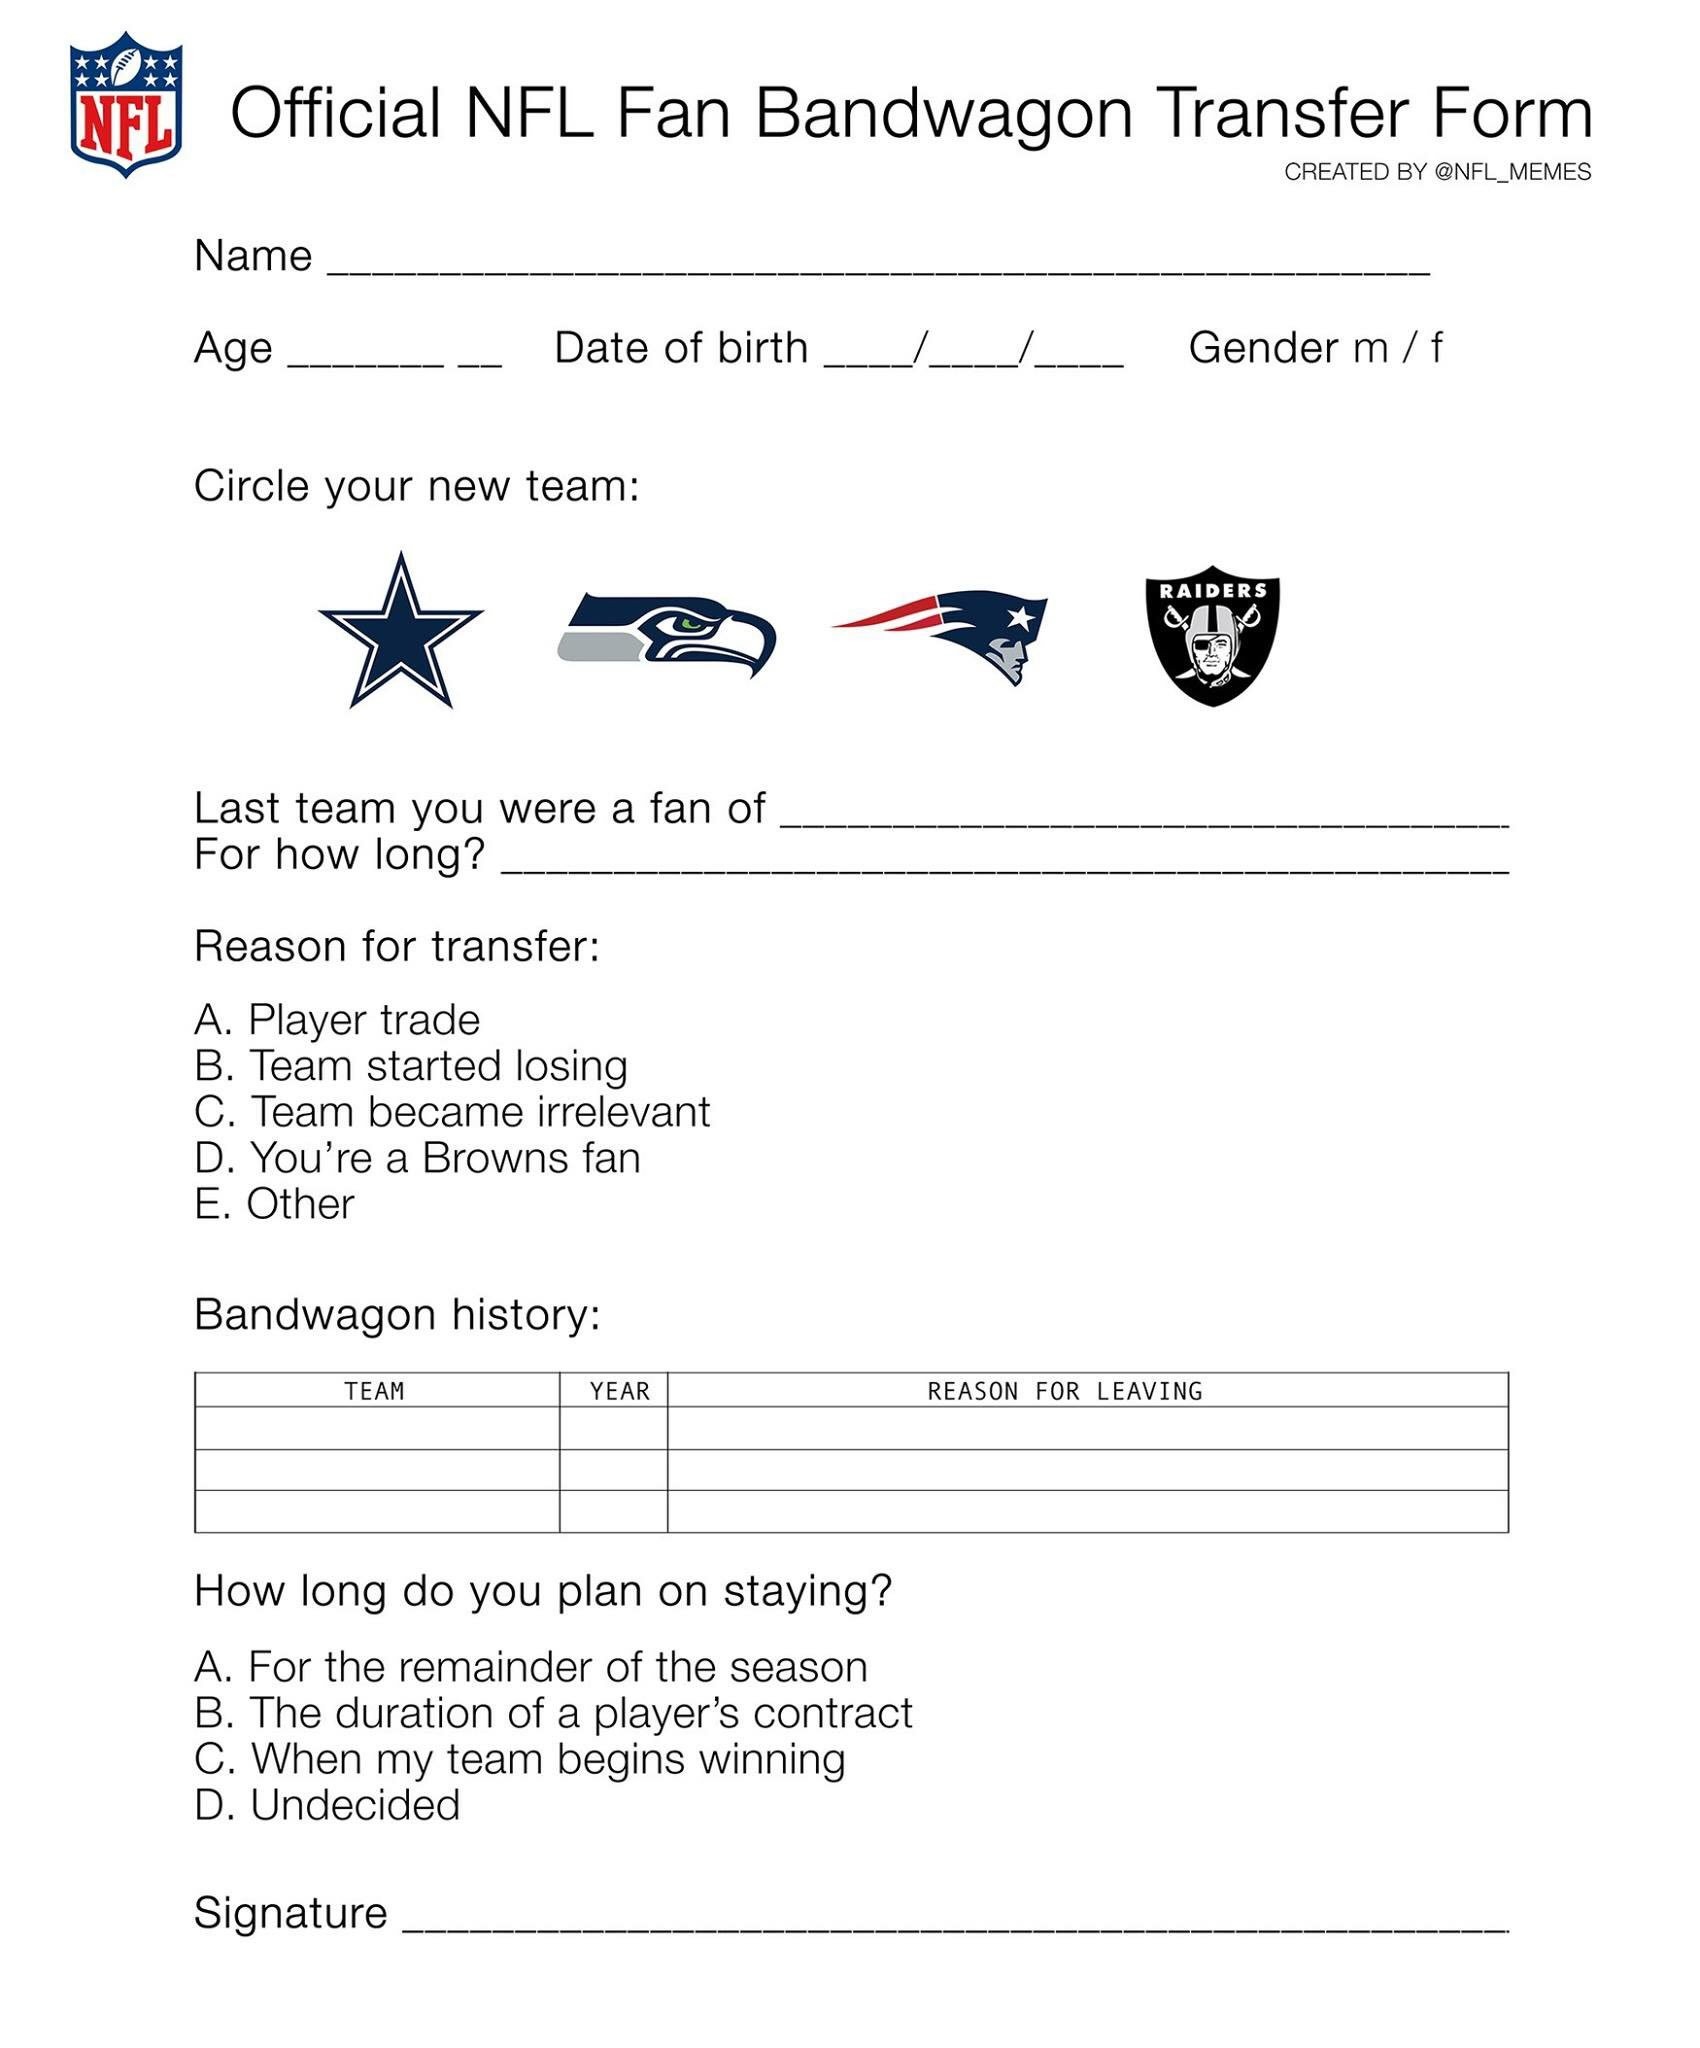 Official Bandwagon transfer form